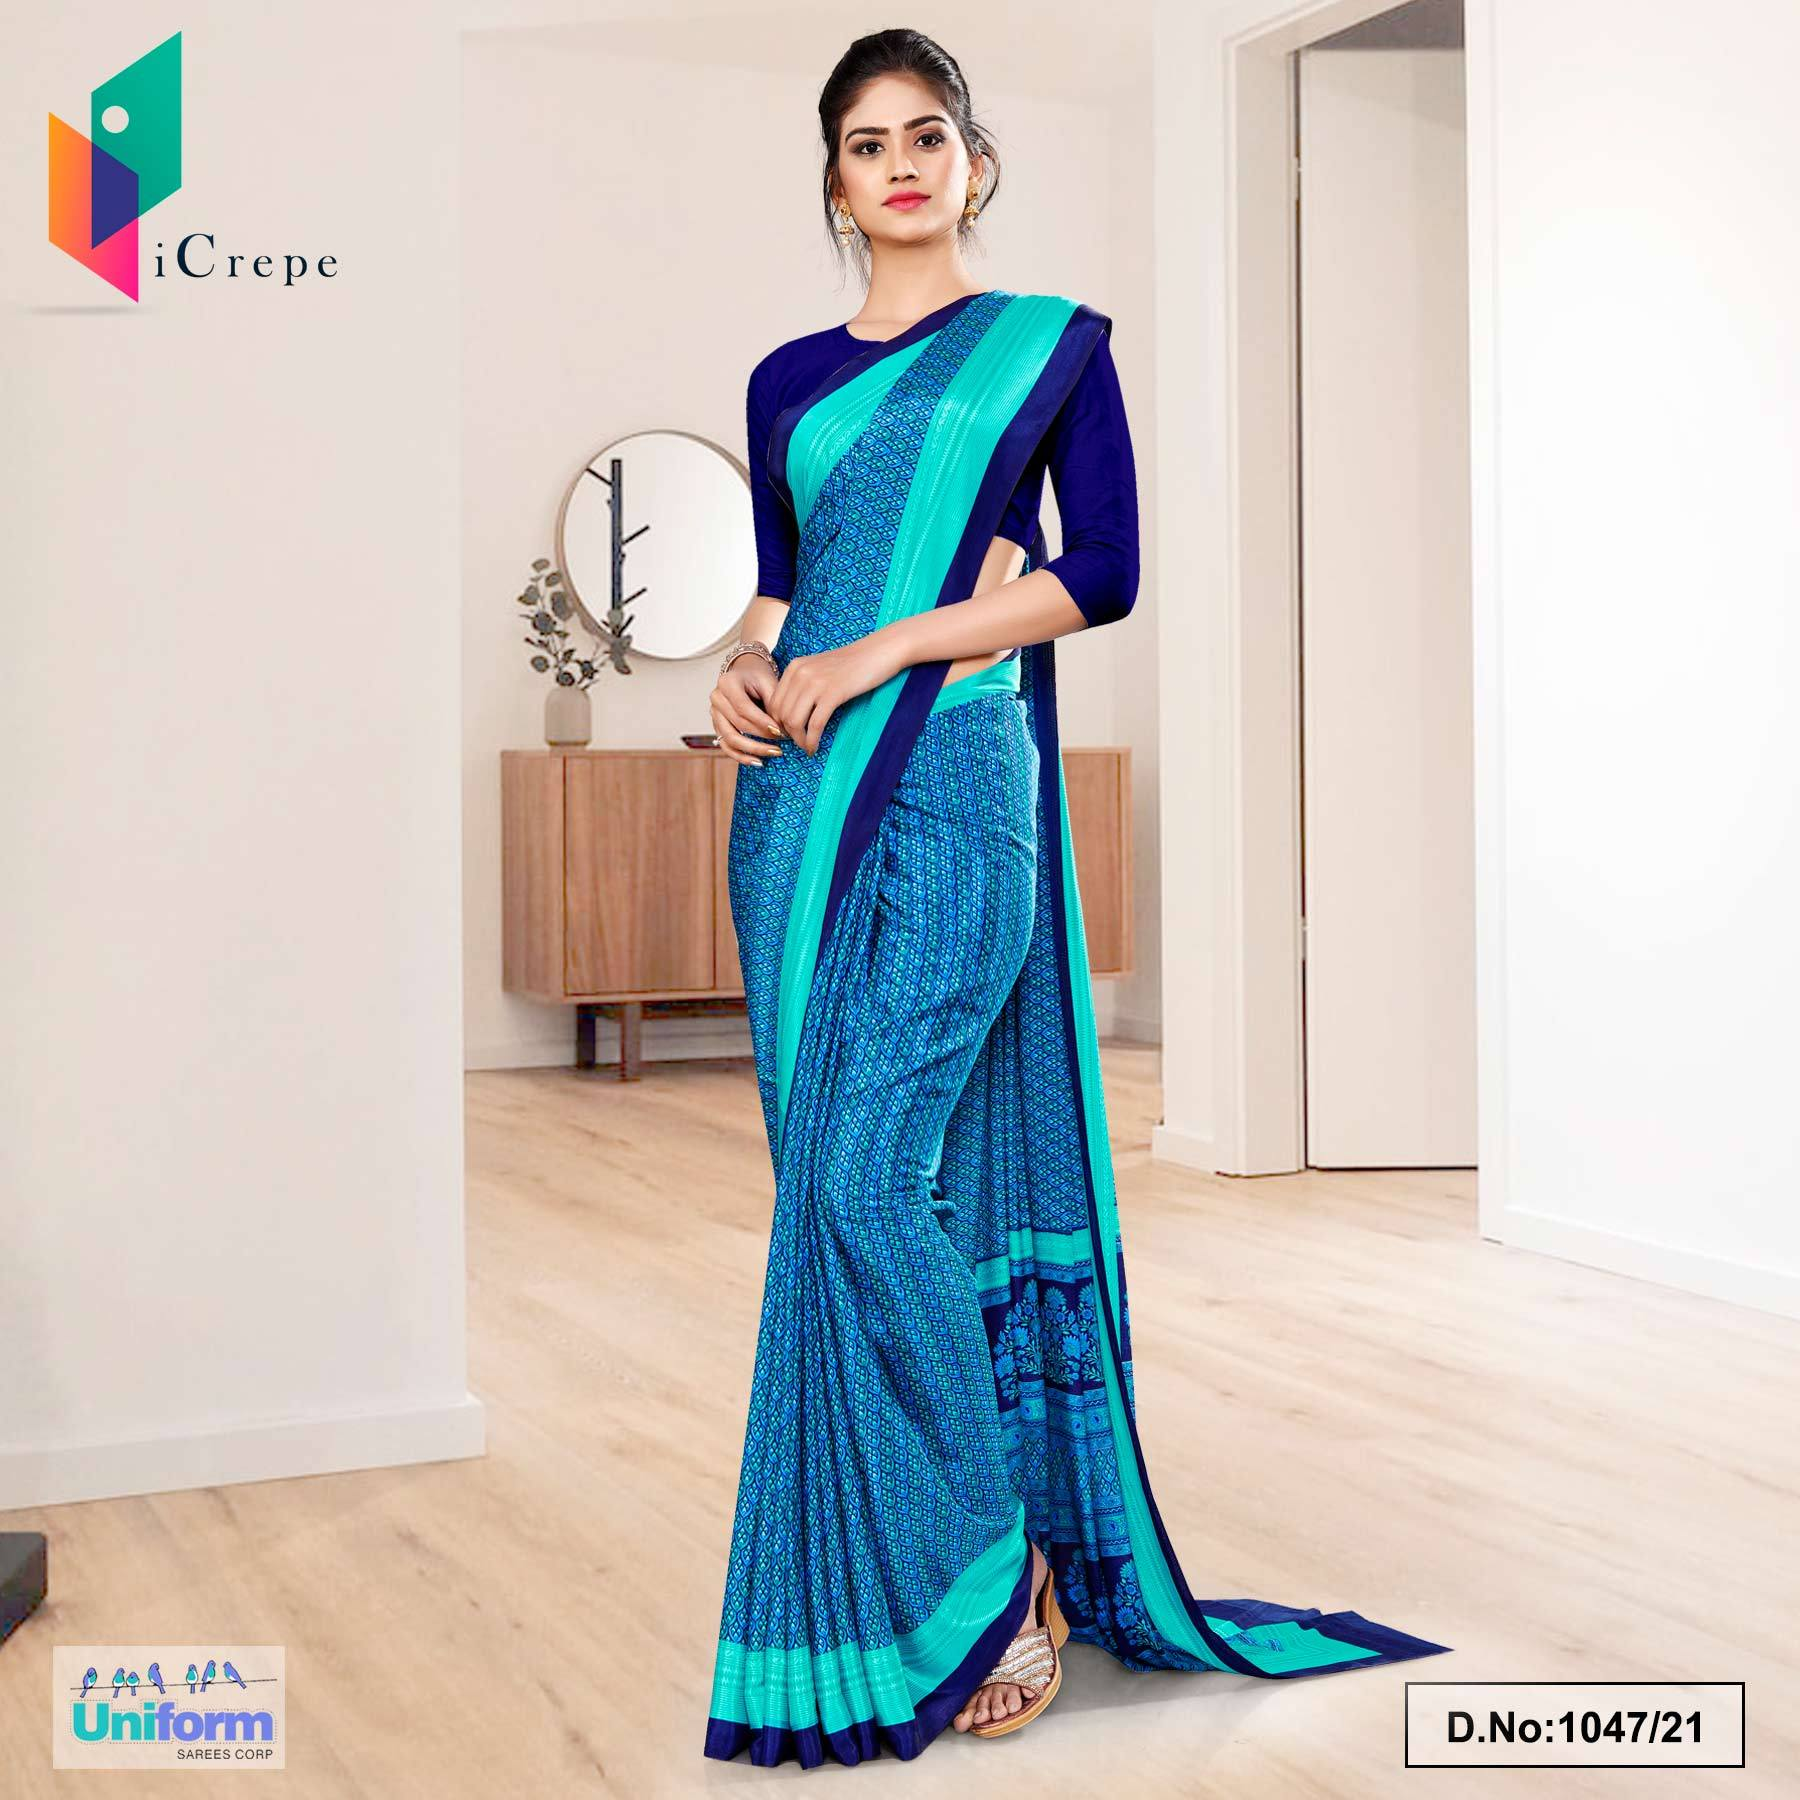 Navy Blue Sea Green Small Print Premium Italian Silk Crepe Uniform Sarees for Institutions